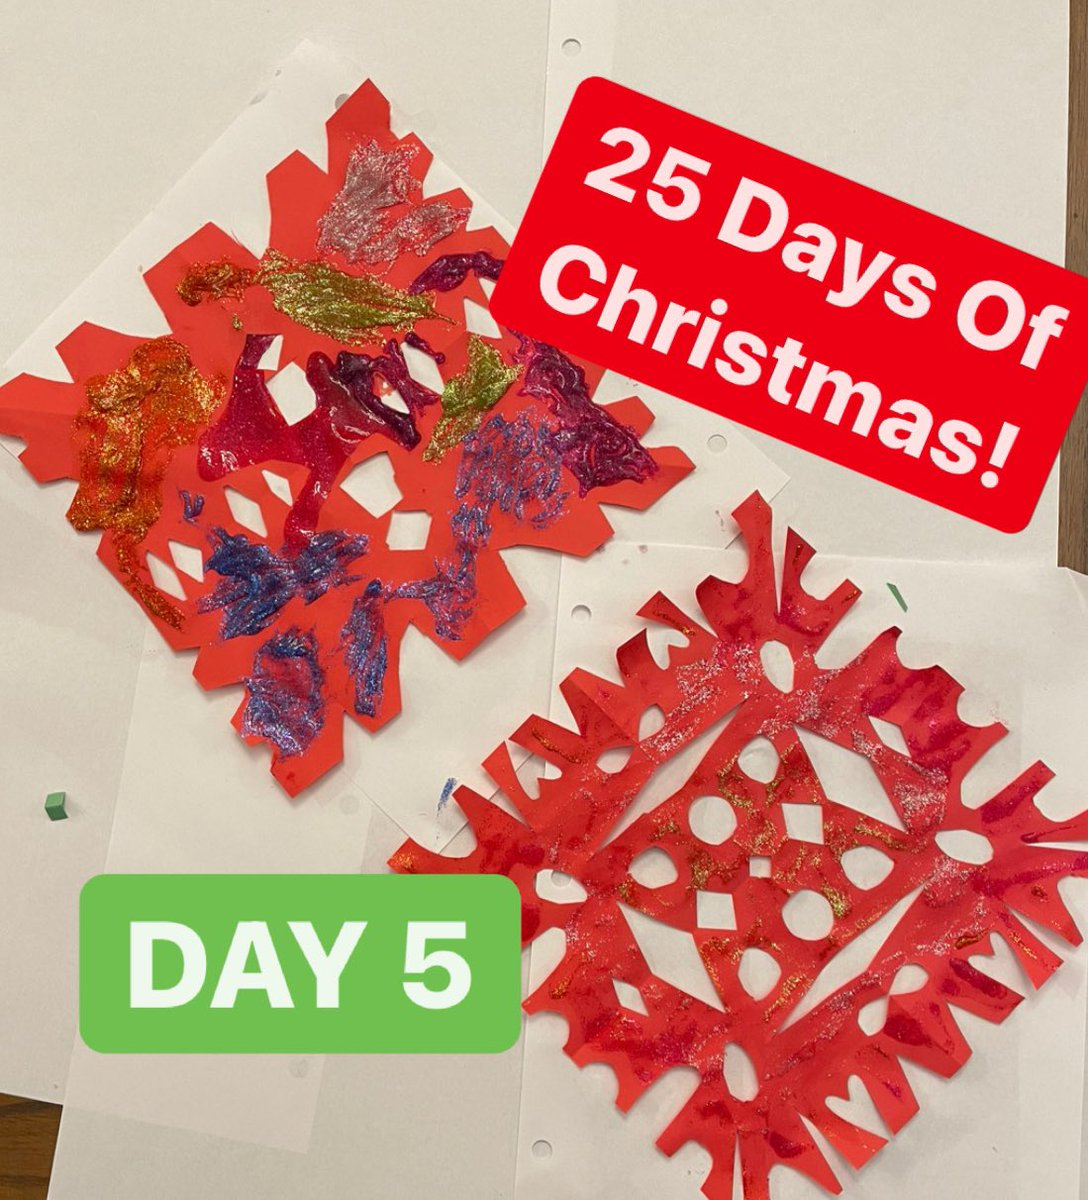 Glitter snowflakes art project for Day 5 of our 25 Days Of Christmas! #family #fun #HappyHolidays #snowflakes #Christmas